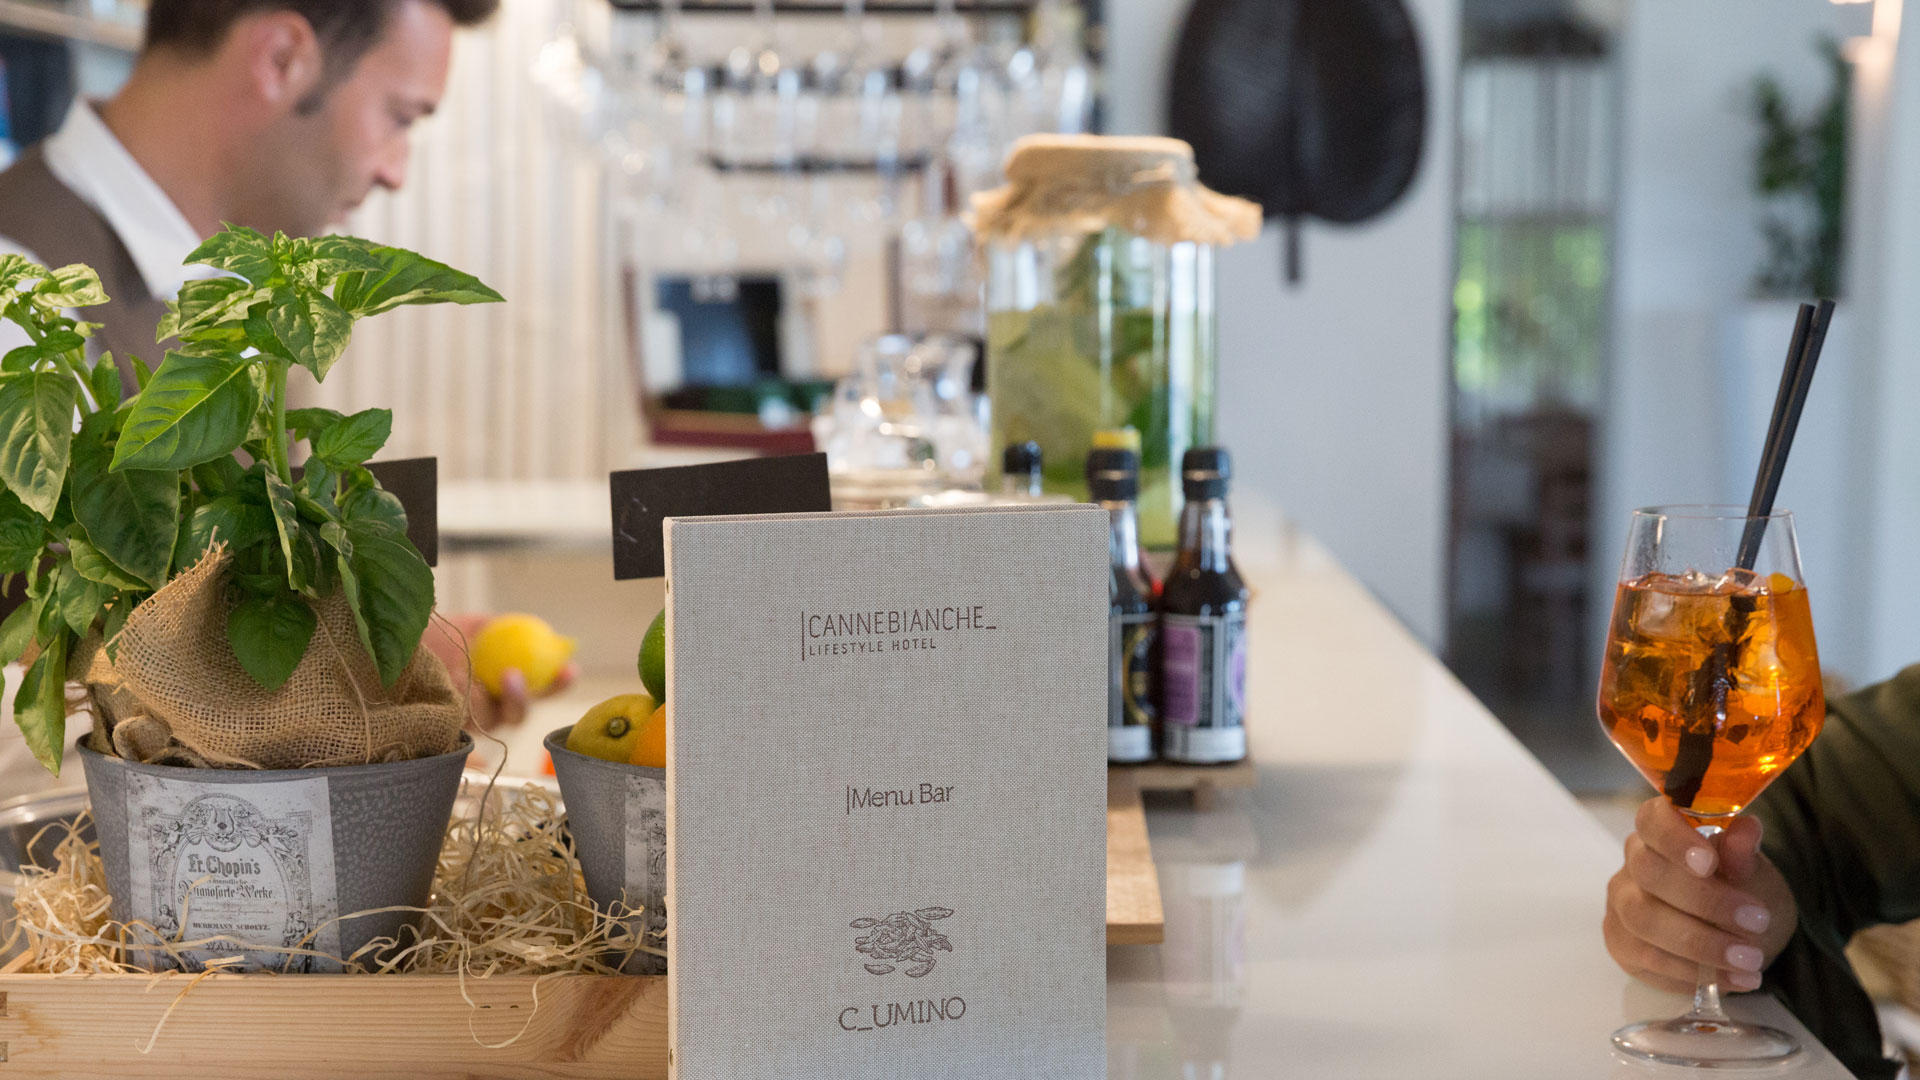 Canne Bianche five stars in Puglia food restaurant